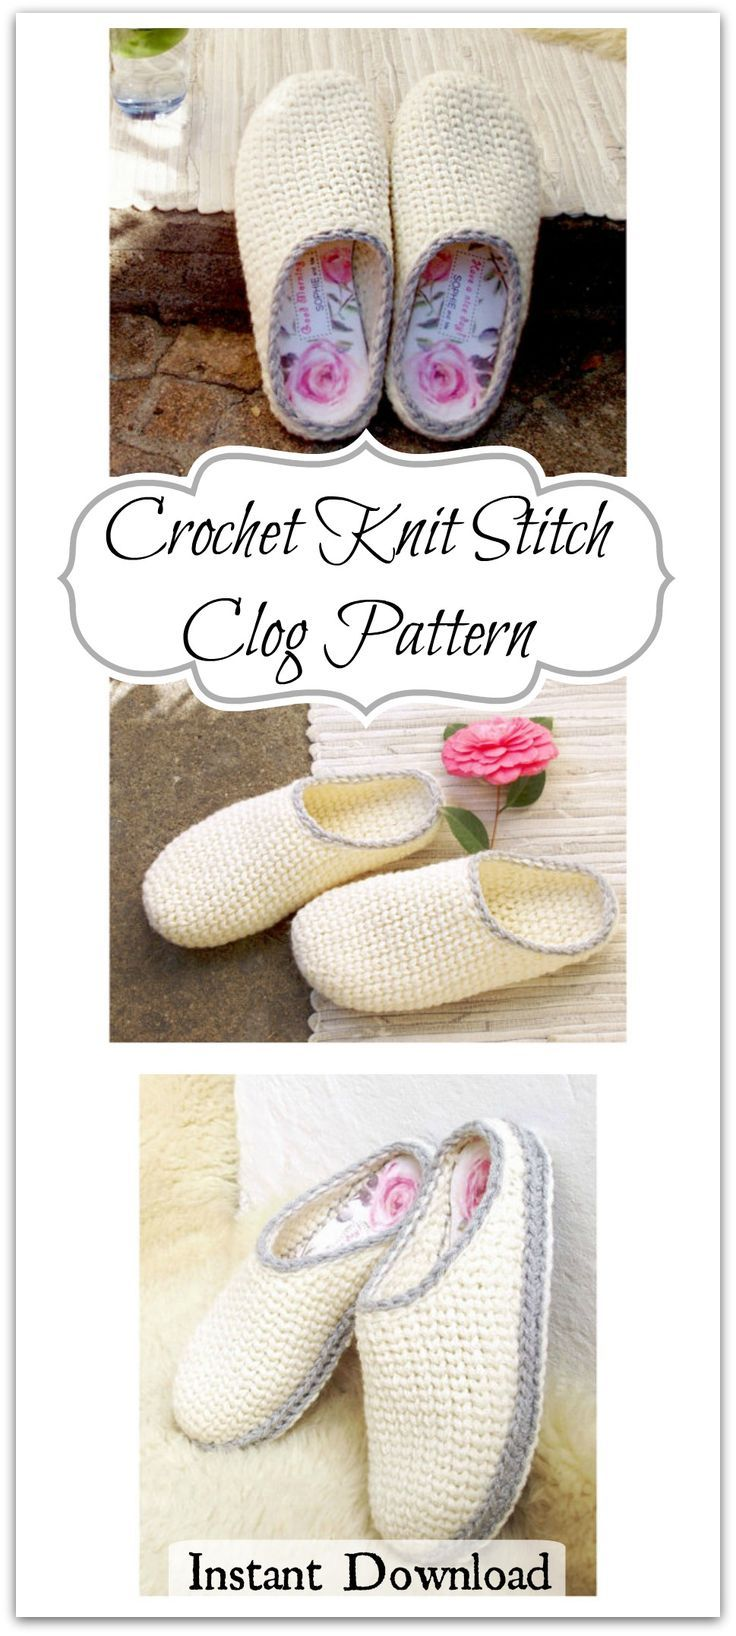 Learn a new stitch! The special crocheted/knit stitch gives a ...